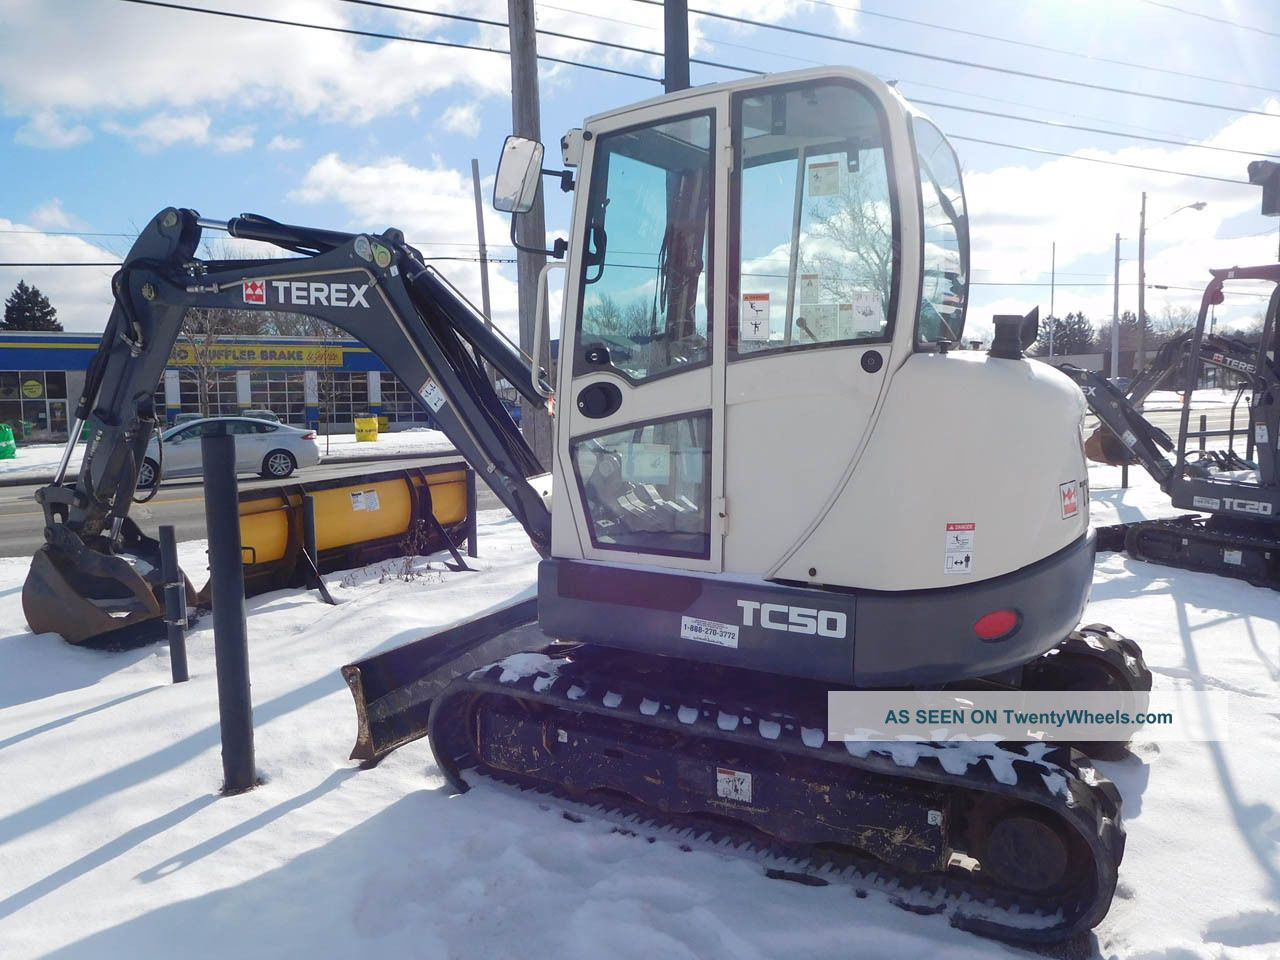 Terex Tc50 Mini Excavator Crawler Excavators photo